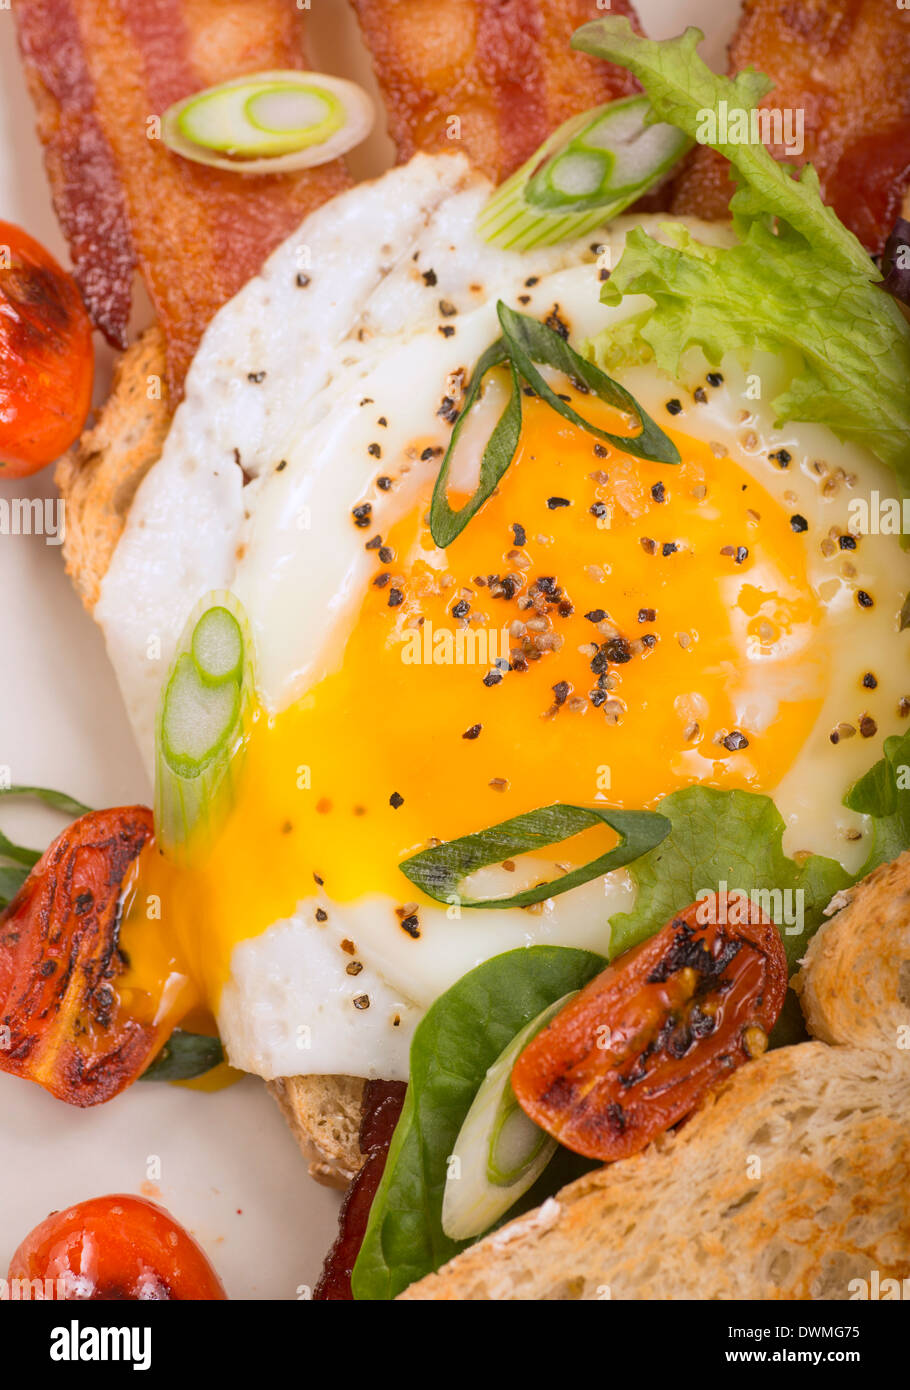 Delicious sunnyside up egg served on toast and bacon with grilled cherry tomatoes - Stock Image